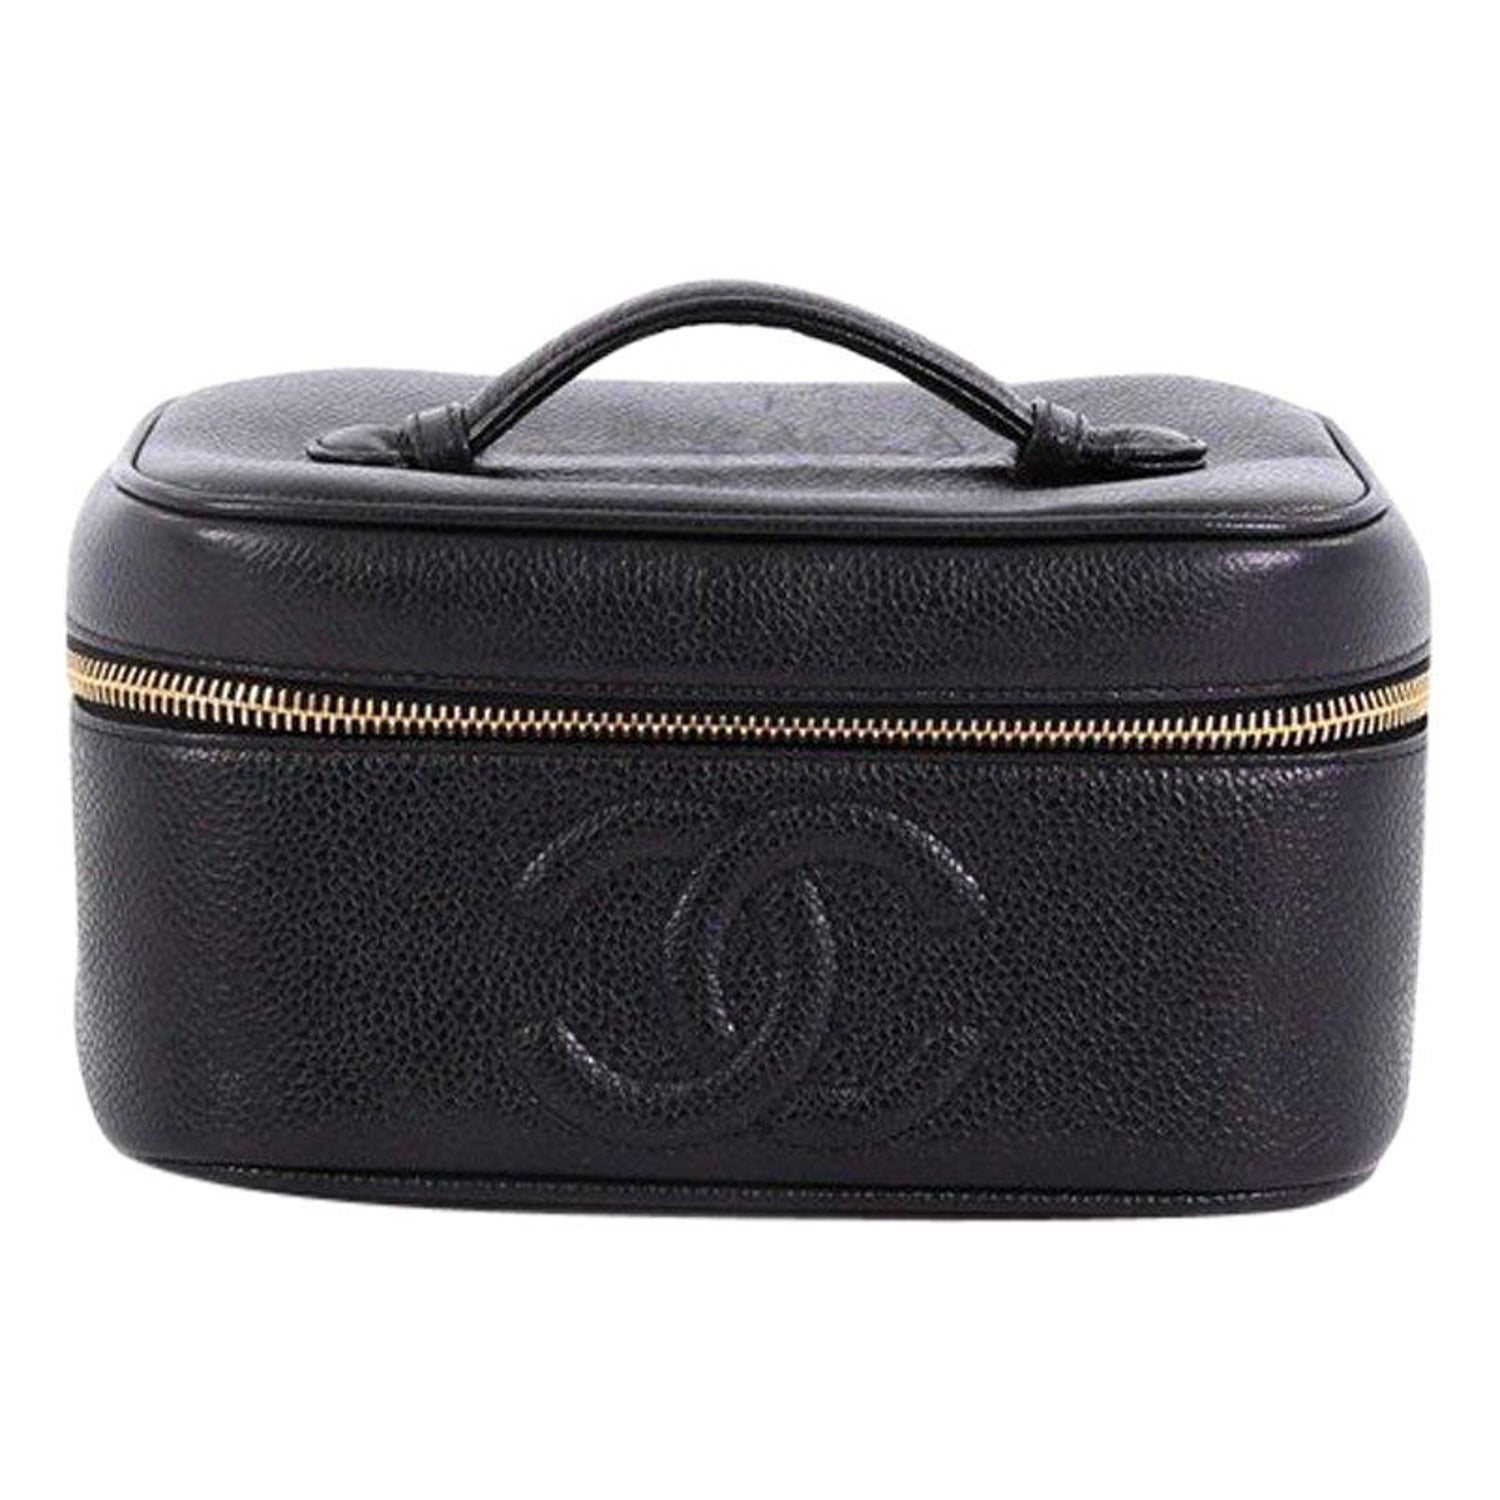 aa46b574fb7fe6 Chanel Vintage Timeless Cosmetic Case Caviar at 1stdibs